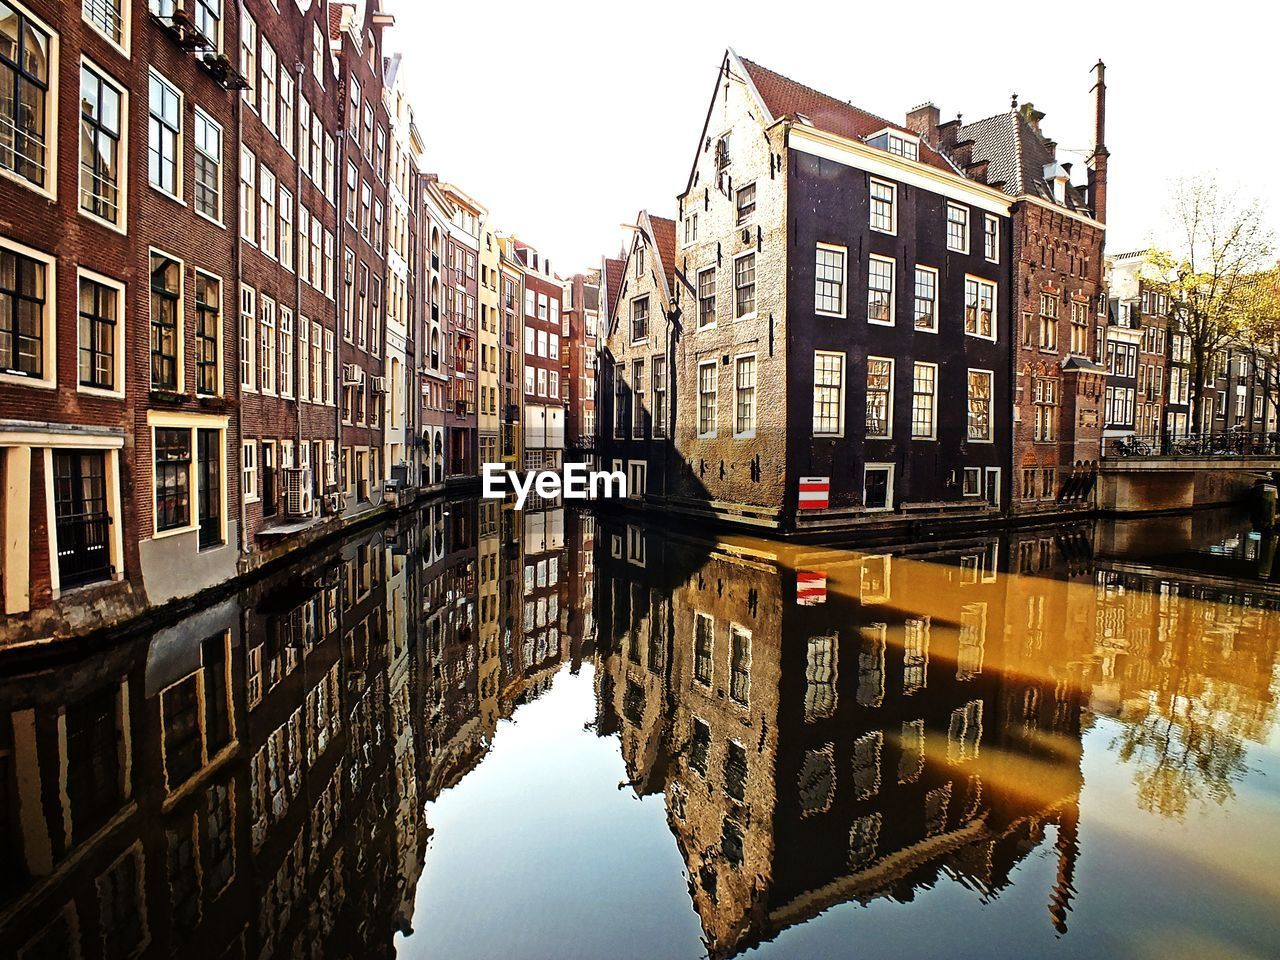 Facades reflecting in canal